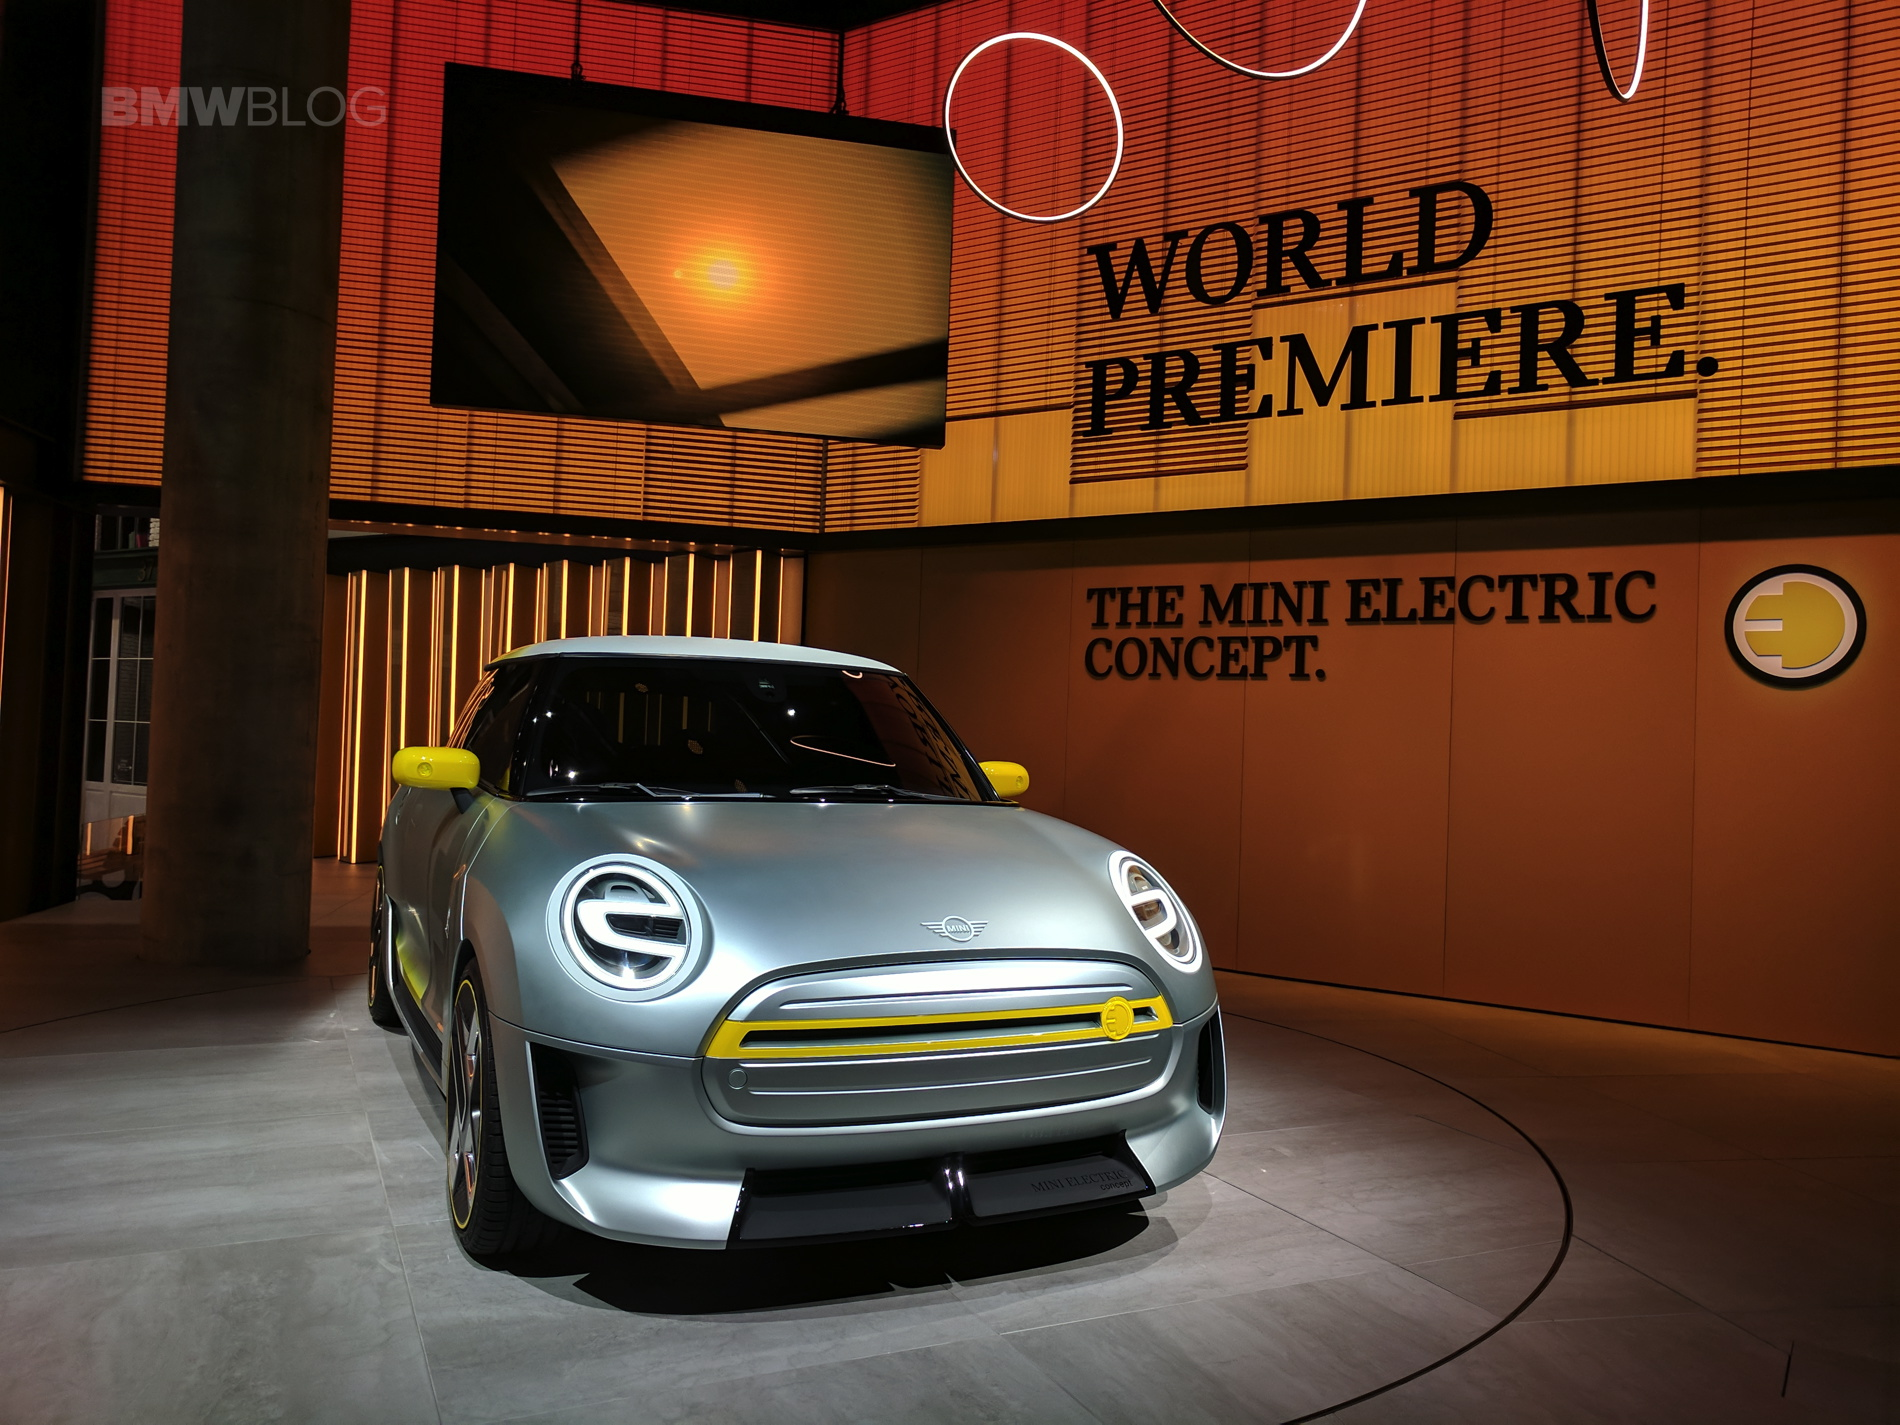 MINI Electric Concept Frankfurt 05